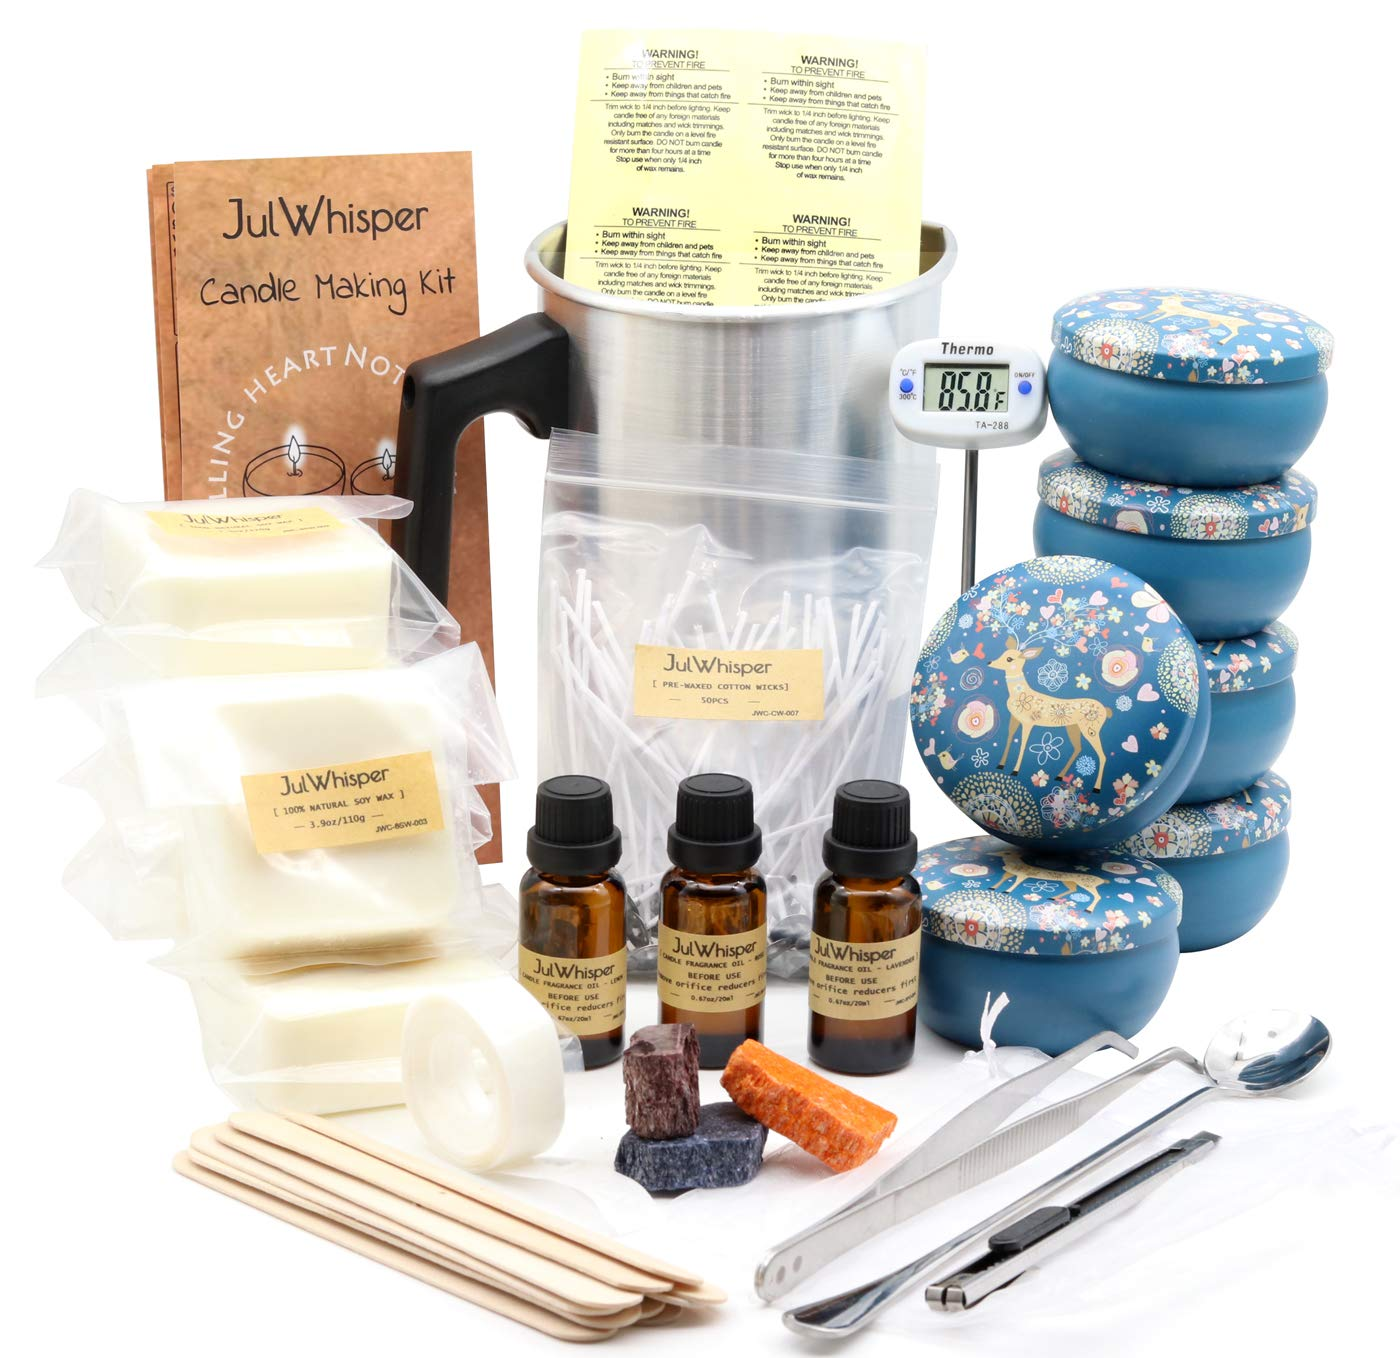 JulWhisper Candle Making Kit Supplies to Create 6 Large Scented Candles, Complete Beginners Set with Soy Wax, Melting Pot, Rich Scents, Thermomete, Tins, Dyes, Wicks & More